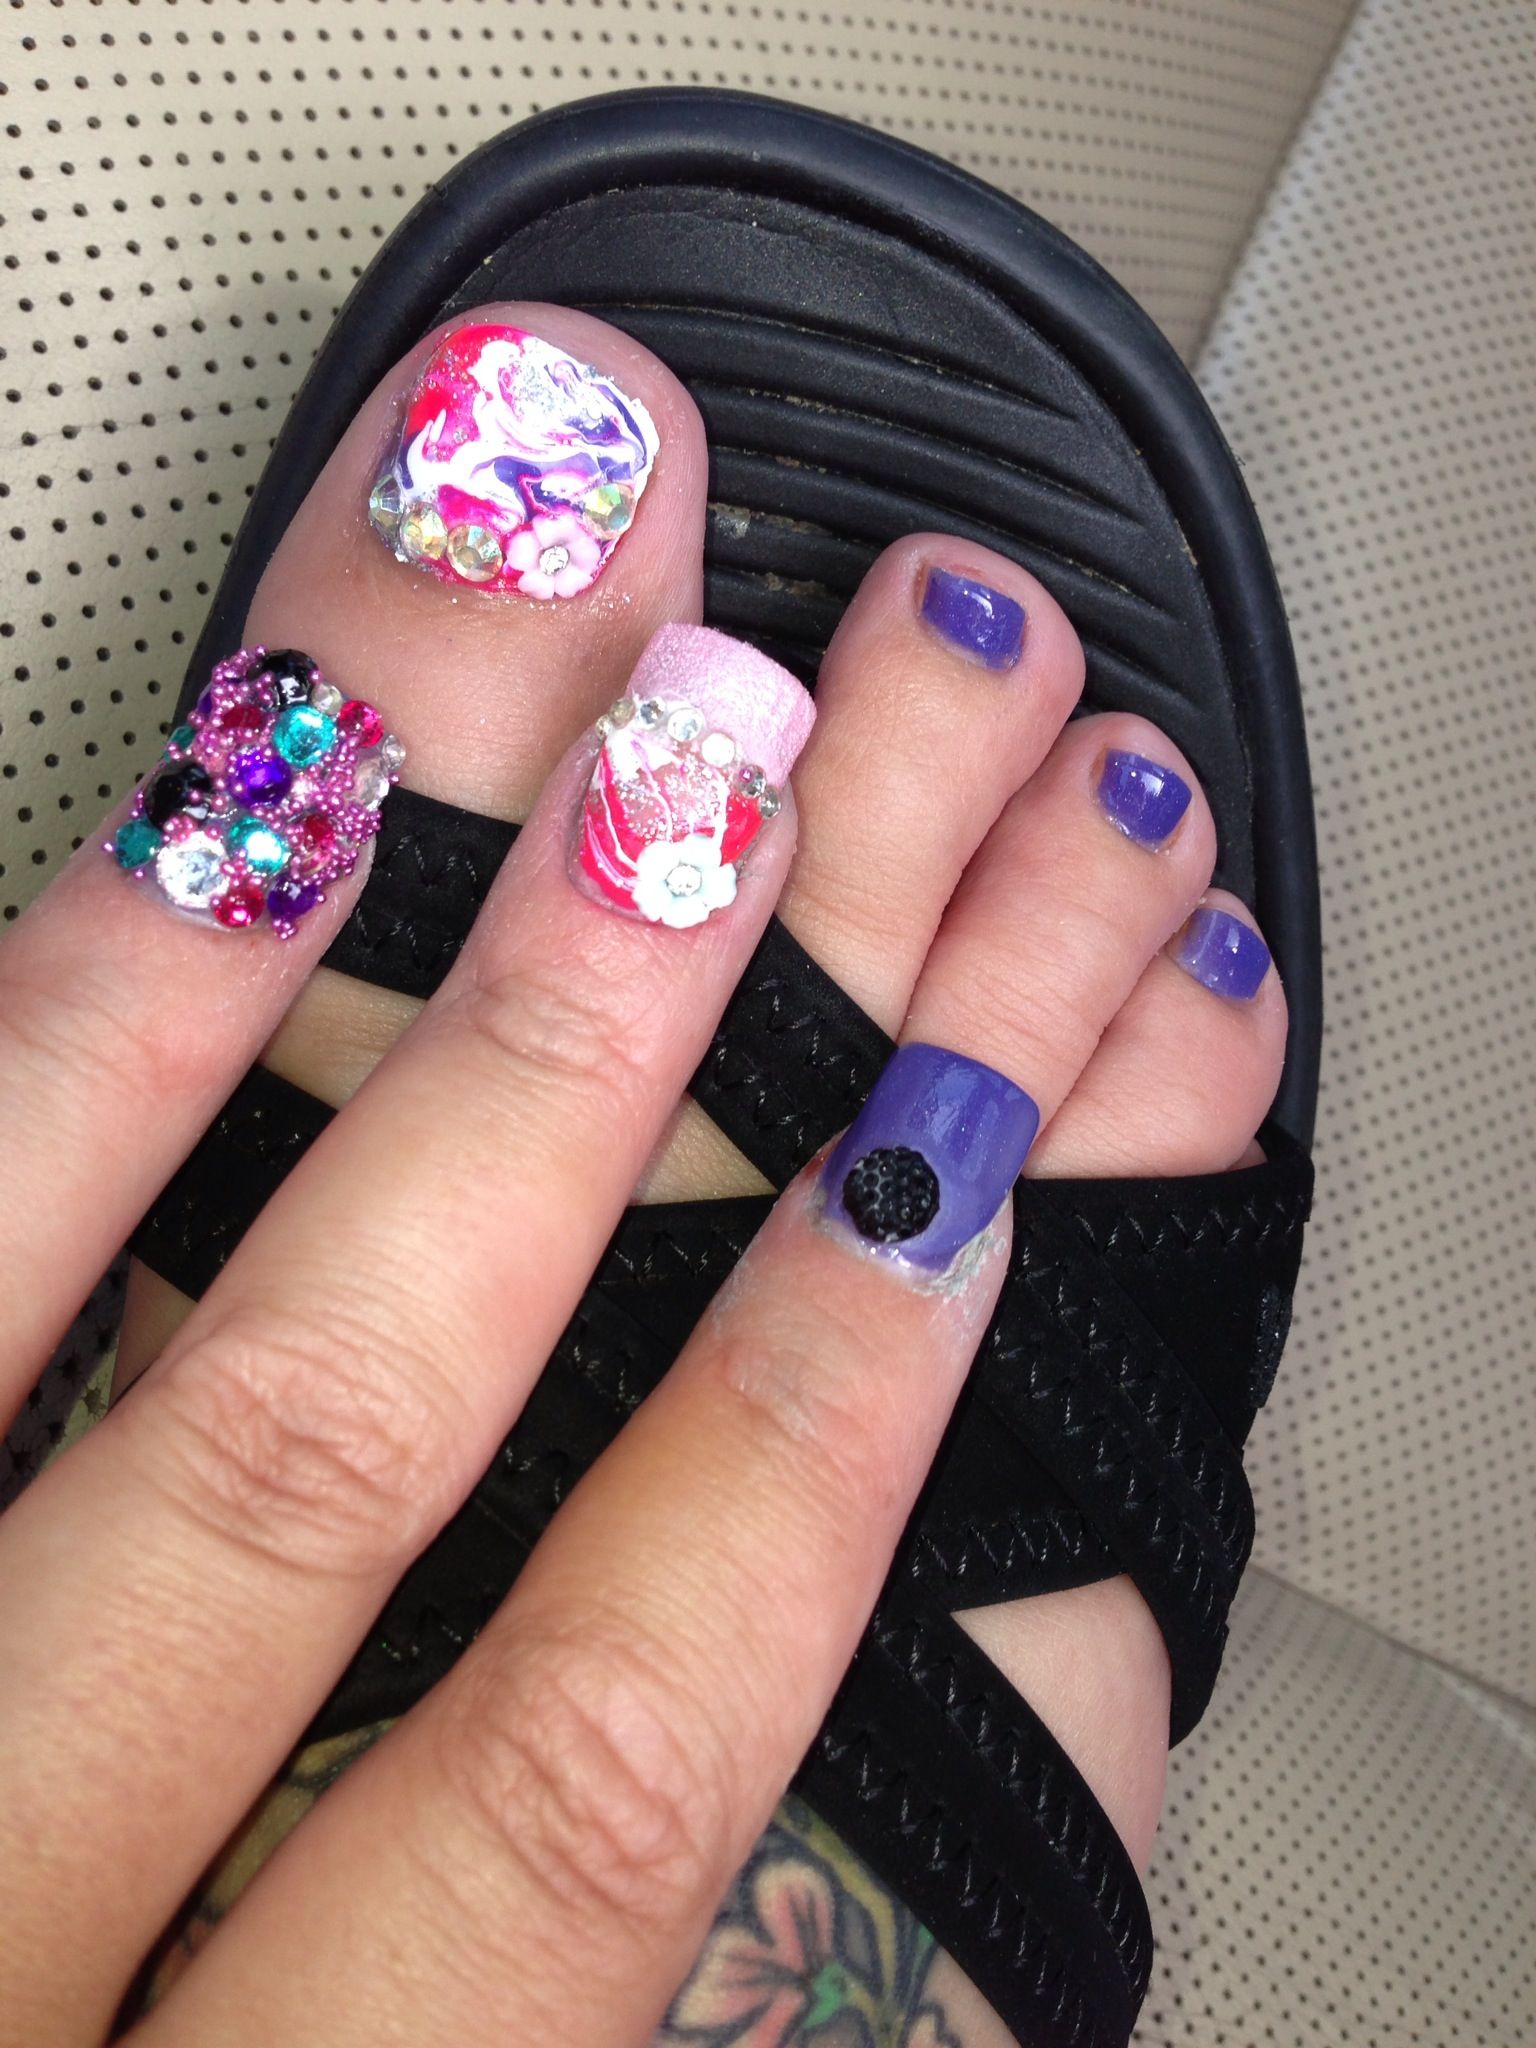 Swirl nails and toe designs Junk nails 3D, purple, hearts, roses ...